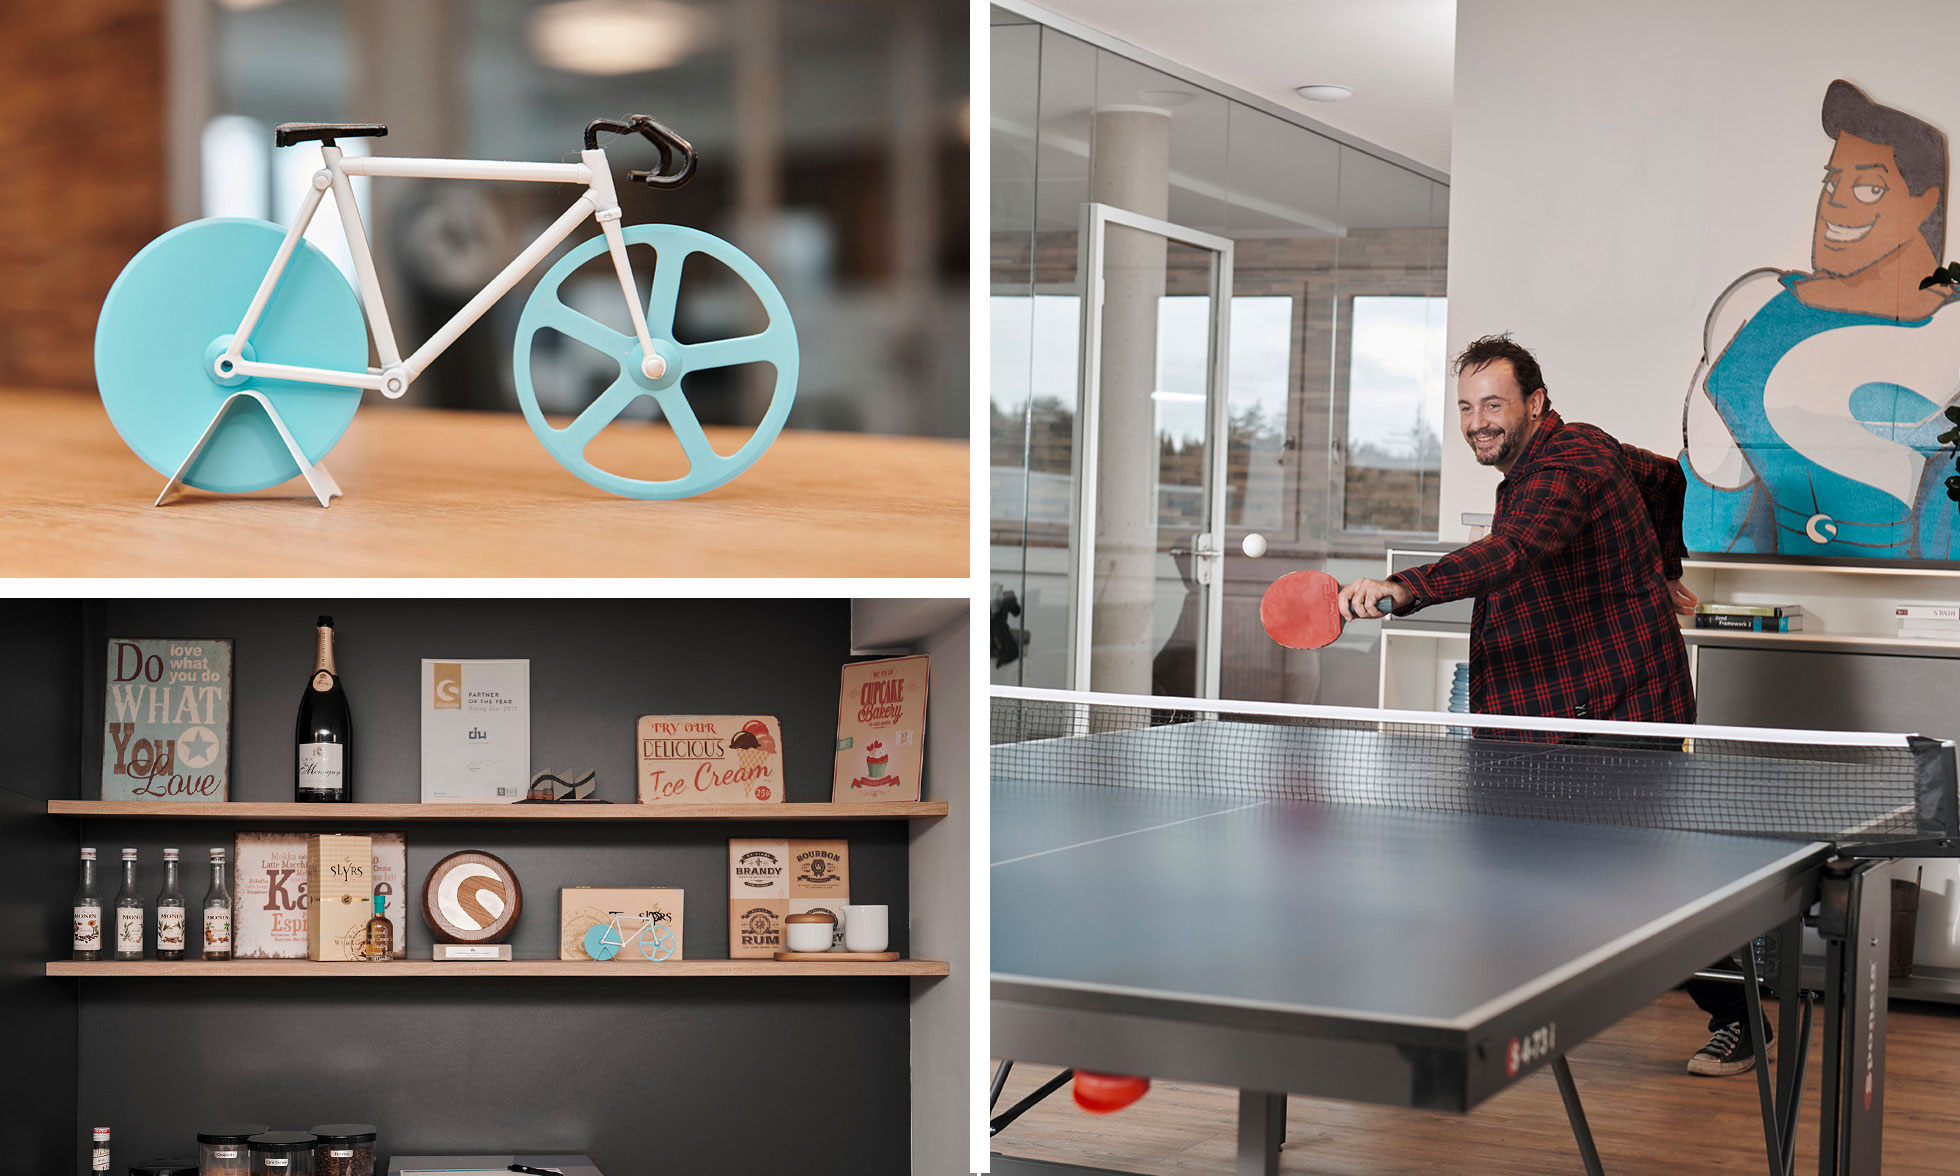 A young man plays table tennis in the dasistweb office (picture on the left). Different impressions of the dasistweb office in Holzkirchen near München. (right).